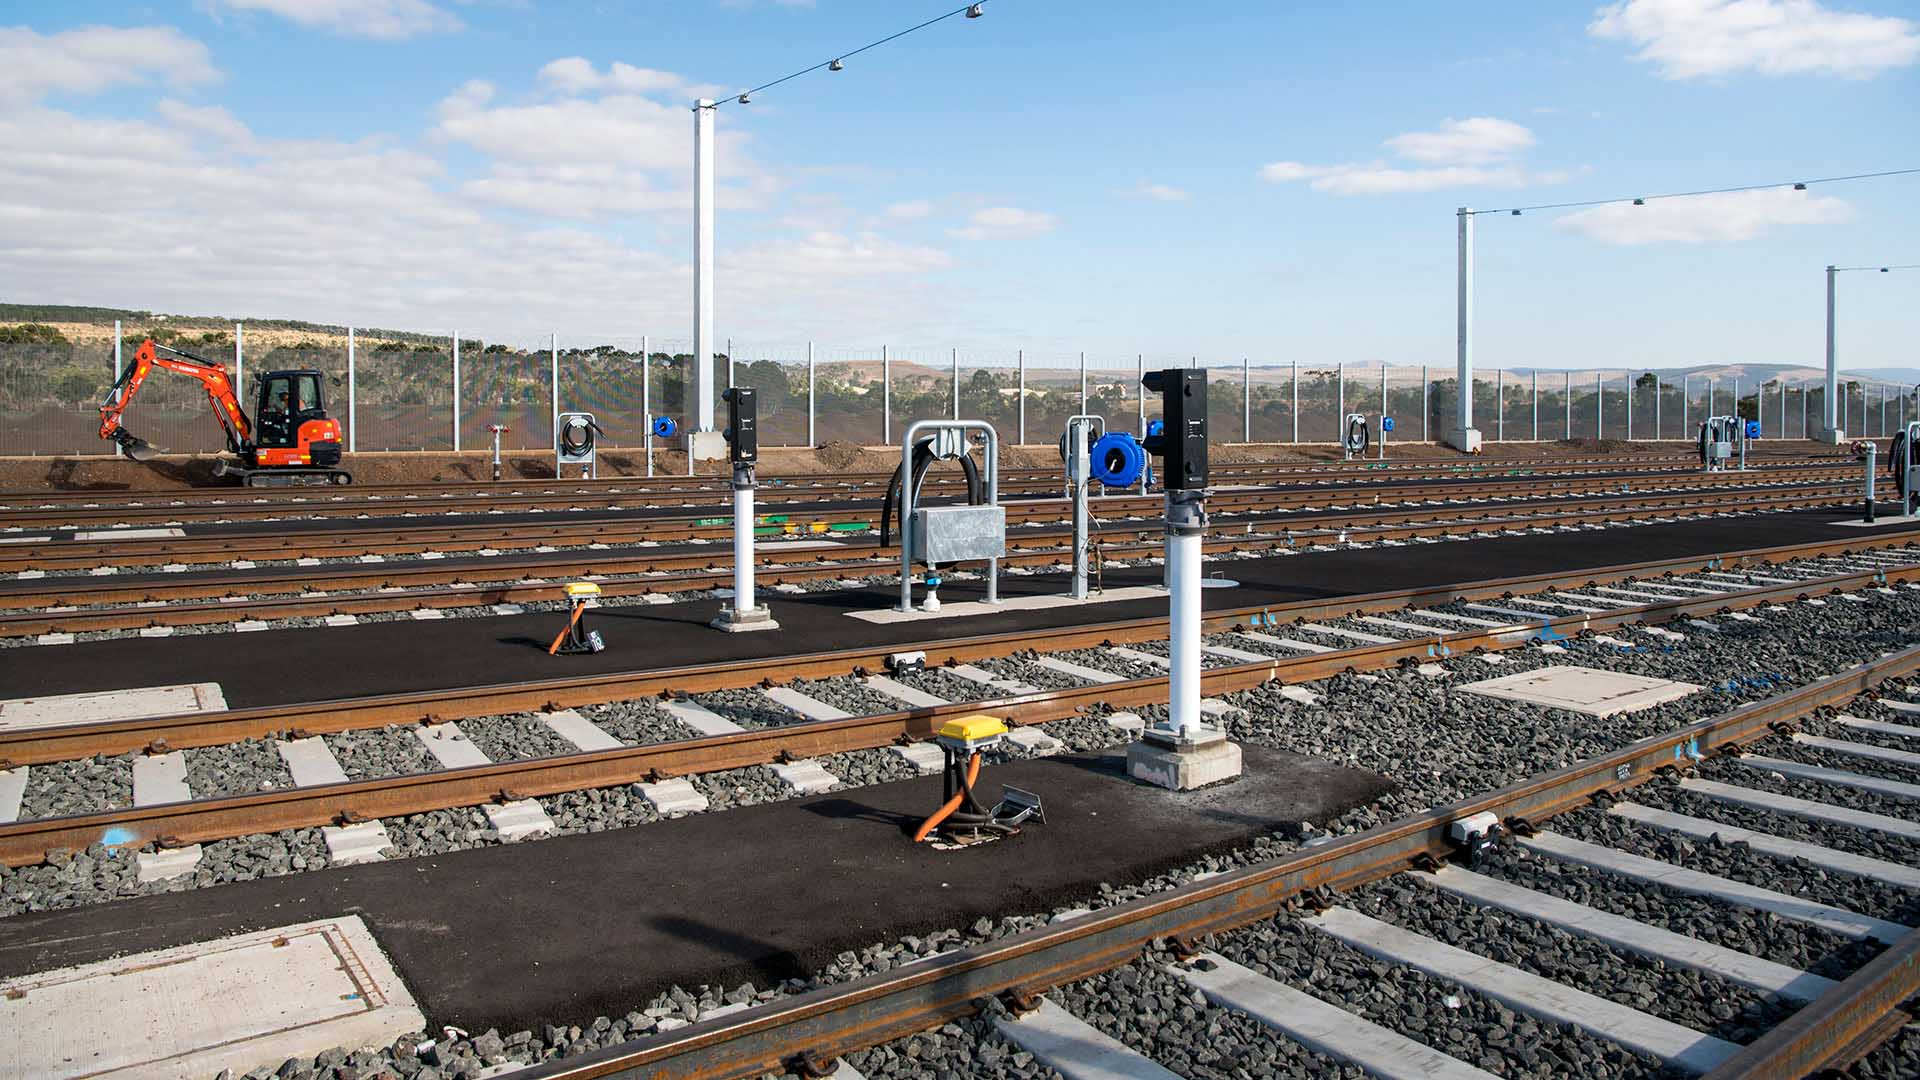 Train stabling yard with multiple tracks and signalling